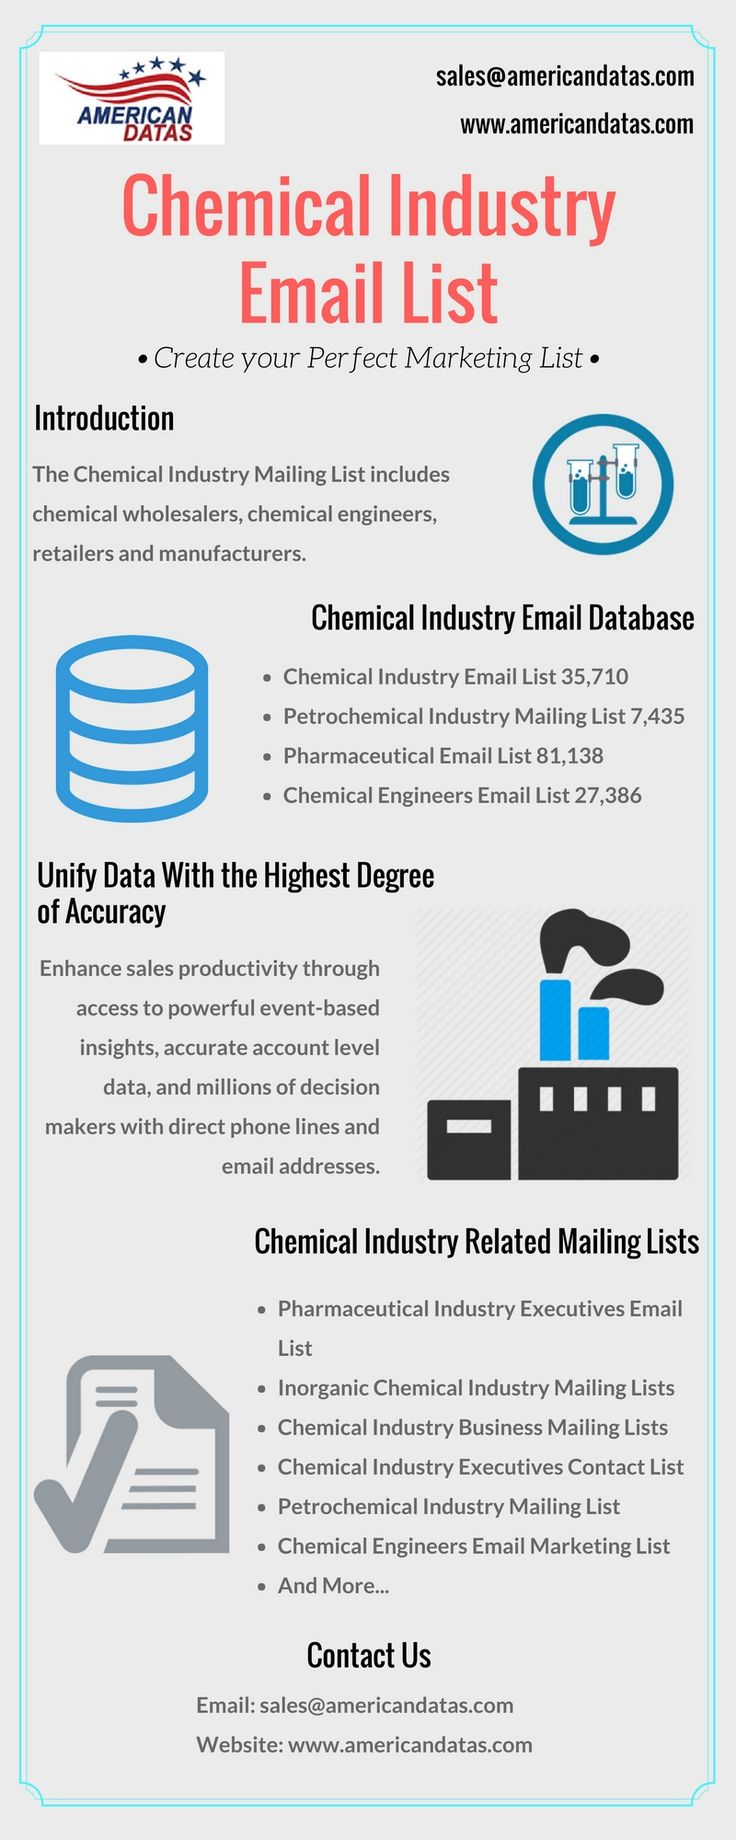 Chemical Industry Email List | Chemical Industry Database | Chemical Industry Professionals Mailing List